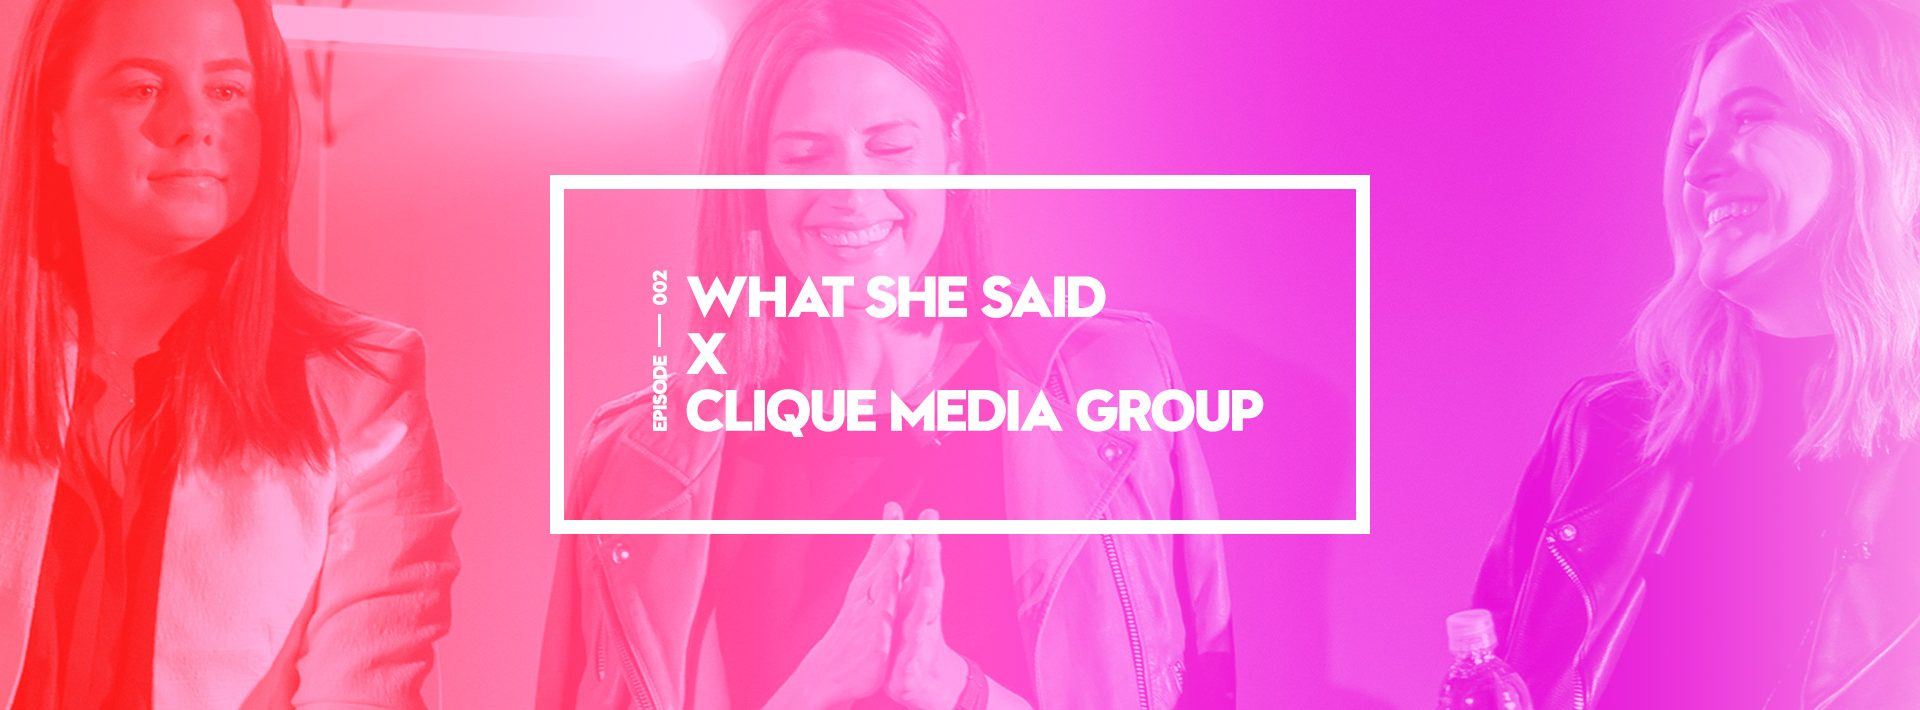 2016-07-25_Whotels_WhatSheSaid_Clique-Media_Podcast_desktop_05